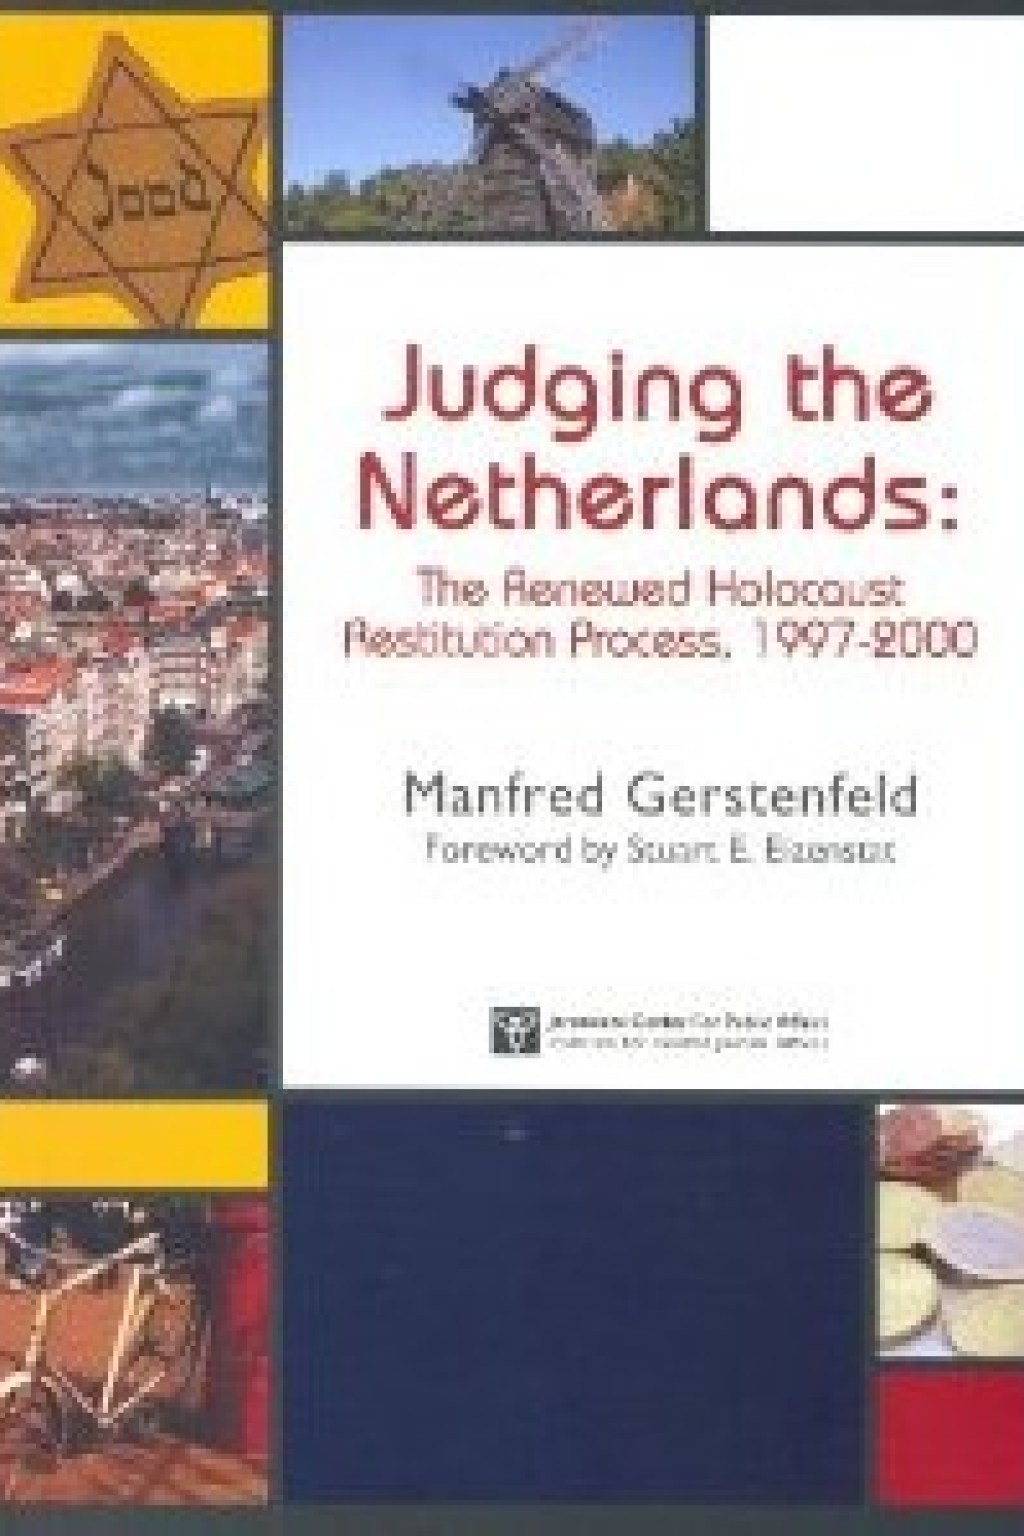 Judging the Netherlands: The Renewed Holocaust Restitution Process, 1997-2000